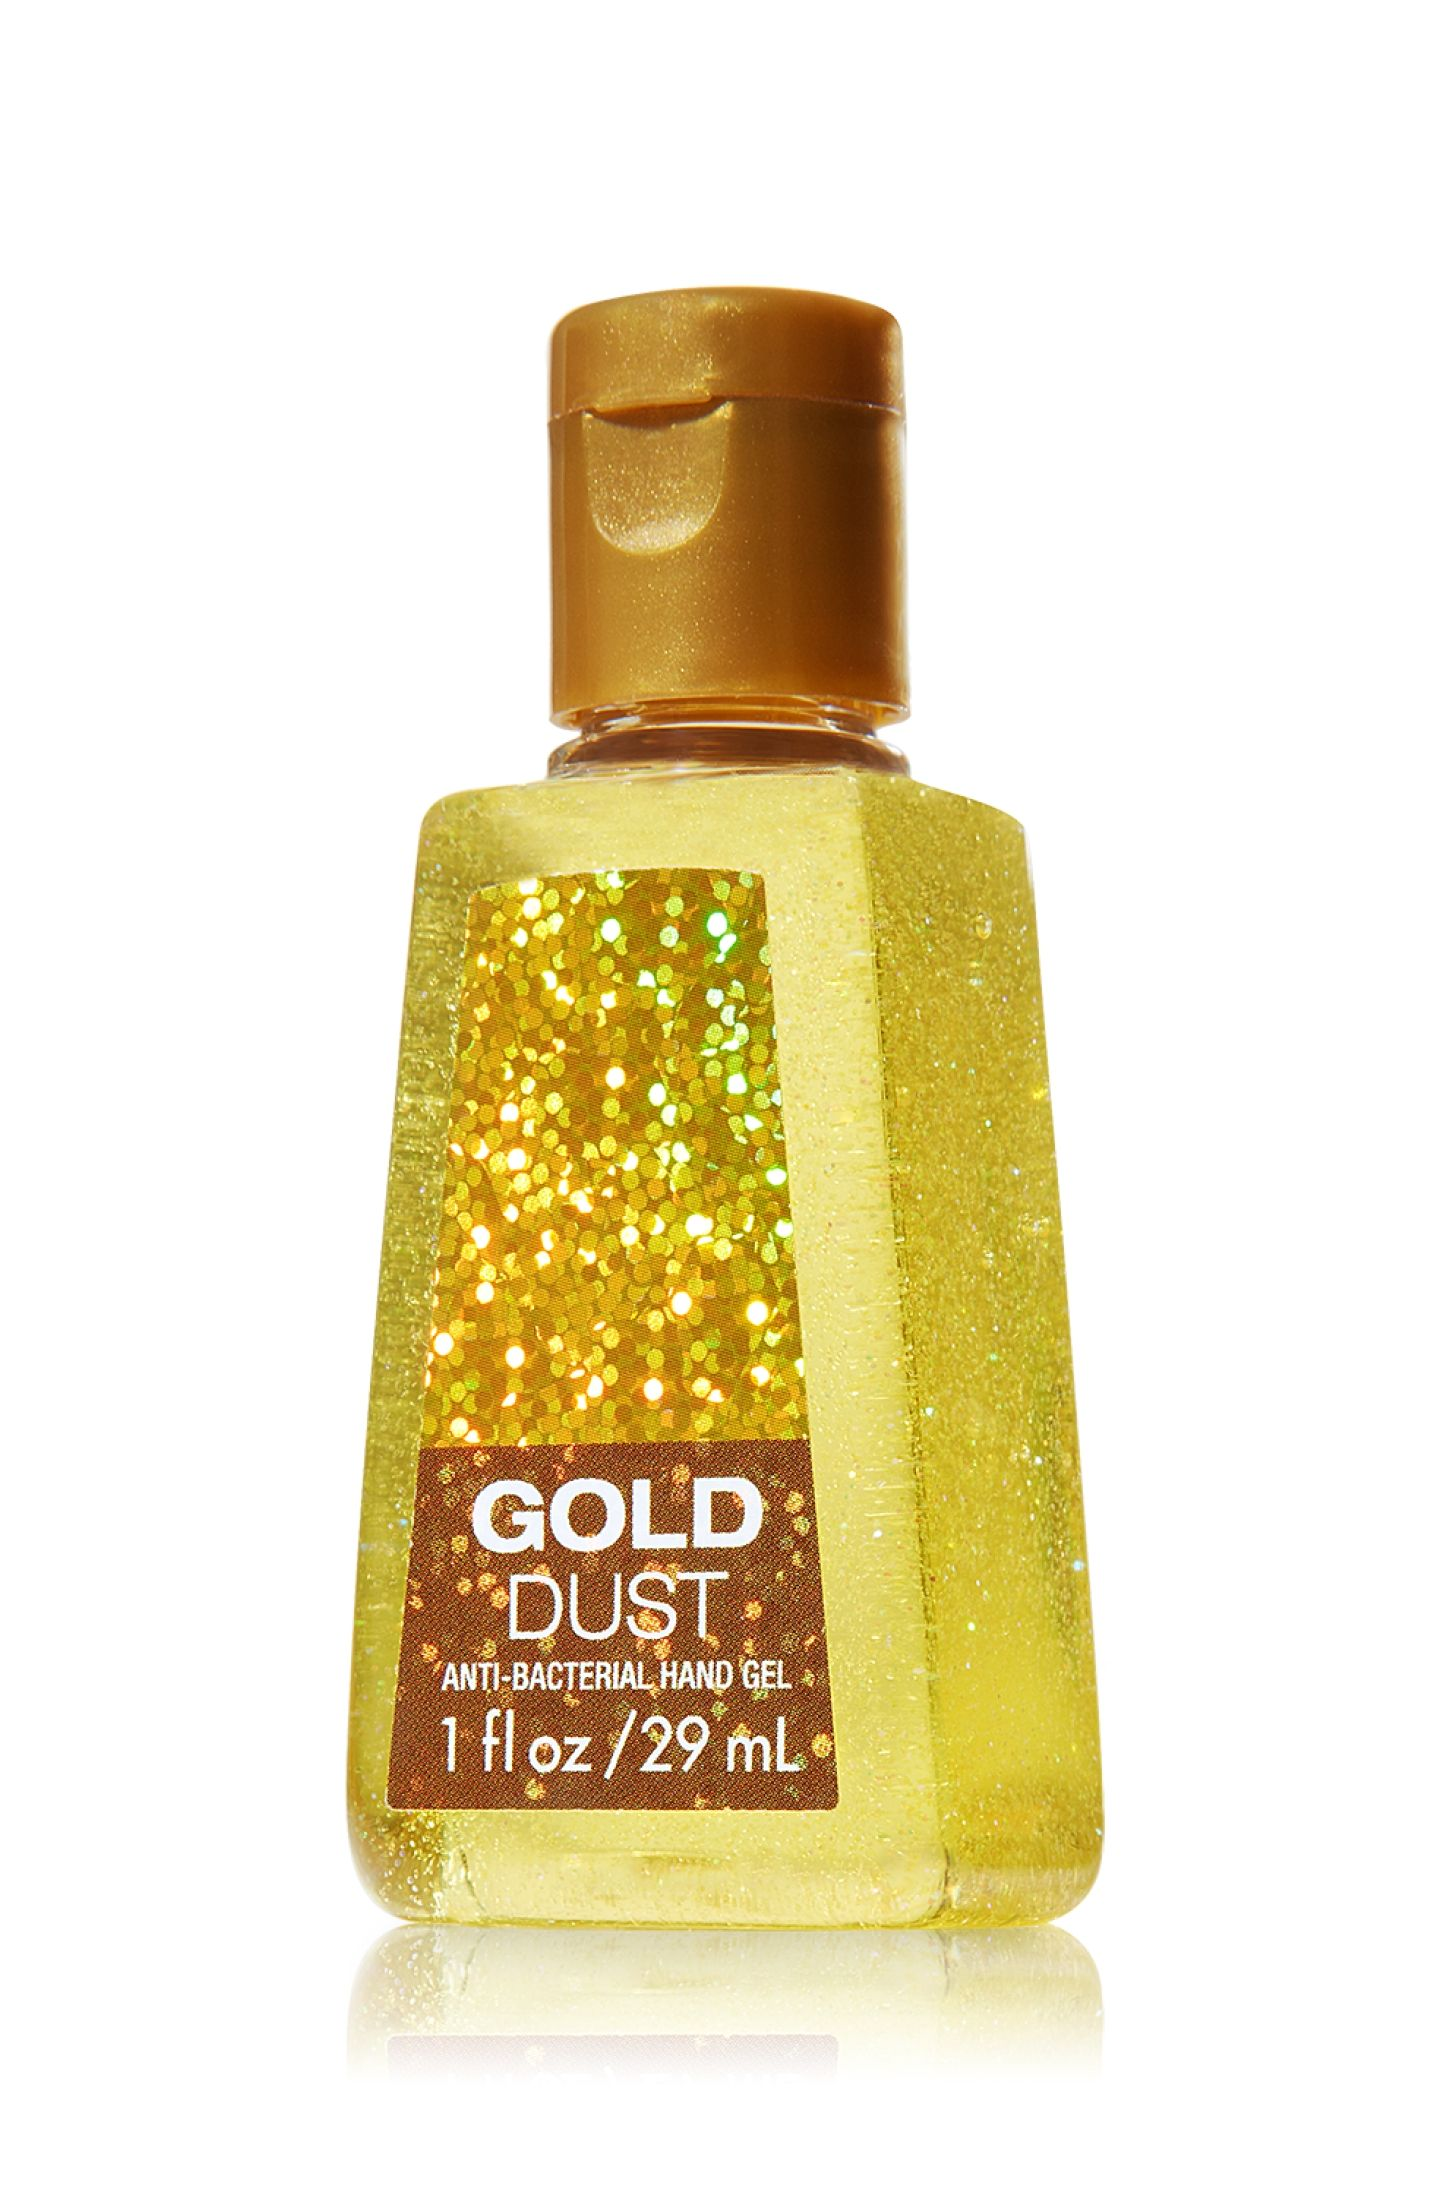 Gold Dust Pocketbac Sanitizing Hand Gel Anti Bacterial Bath